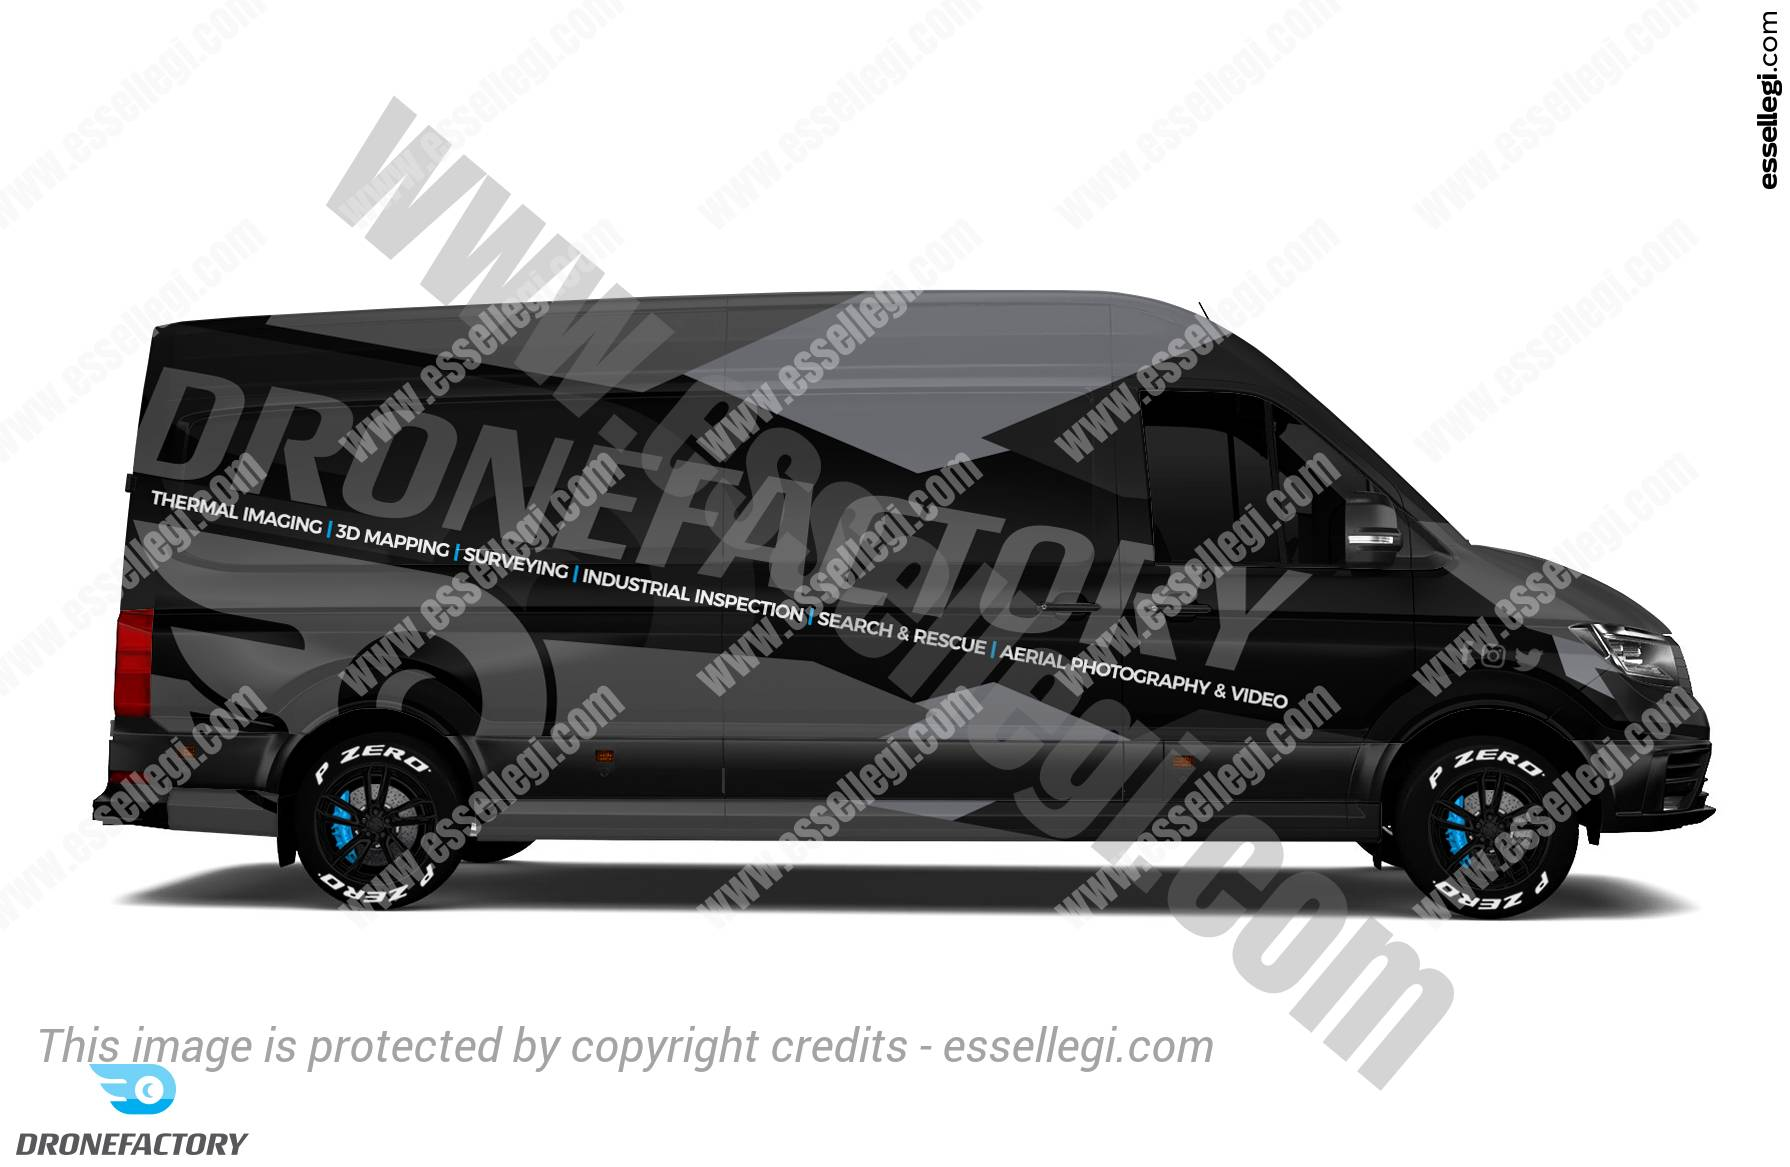 Volkswagen Crafter Wrap Design. Volkswagen Crafter | Van Wrap Design by Essellegi. Van Signs, Van Signage, Van Wrapping, Van Signwriting, Van Wrap Designer, Signs for Van, Van Logo, Van Graphic by Essellegi.